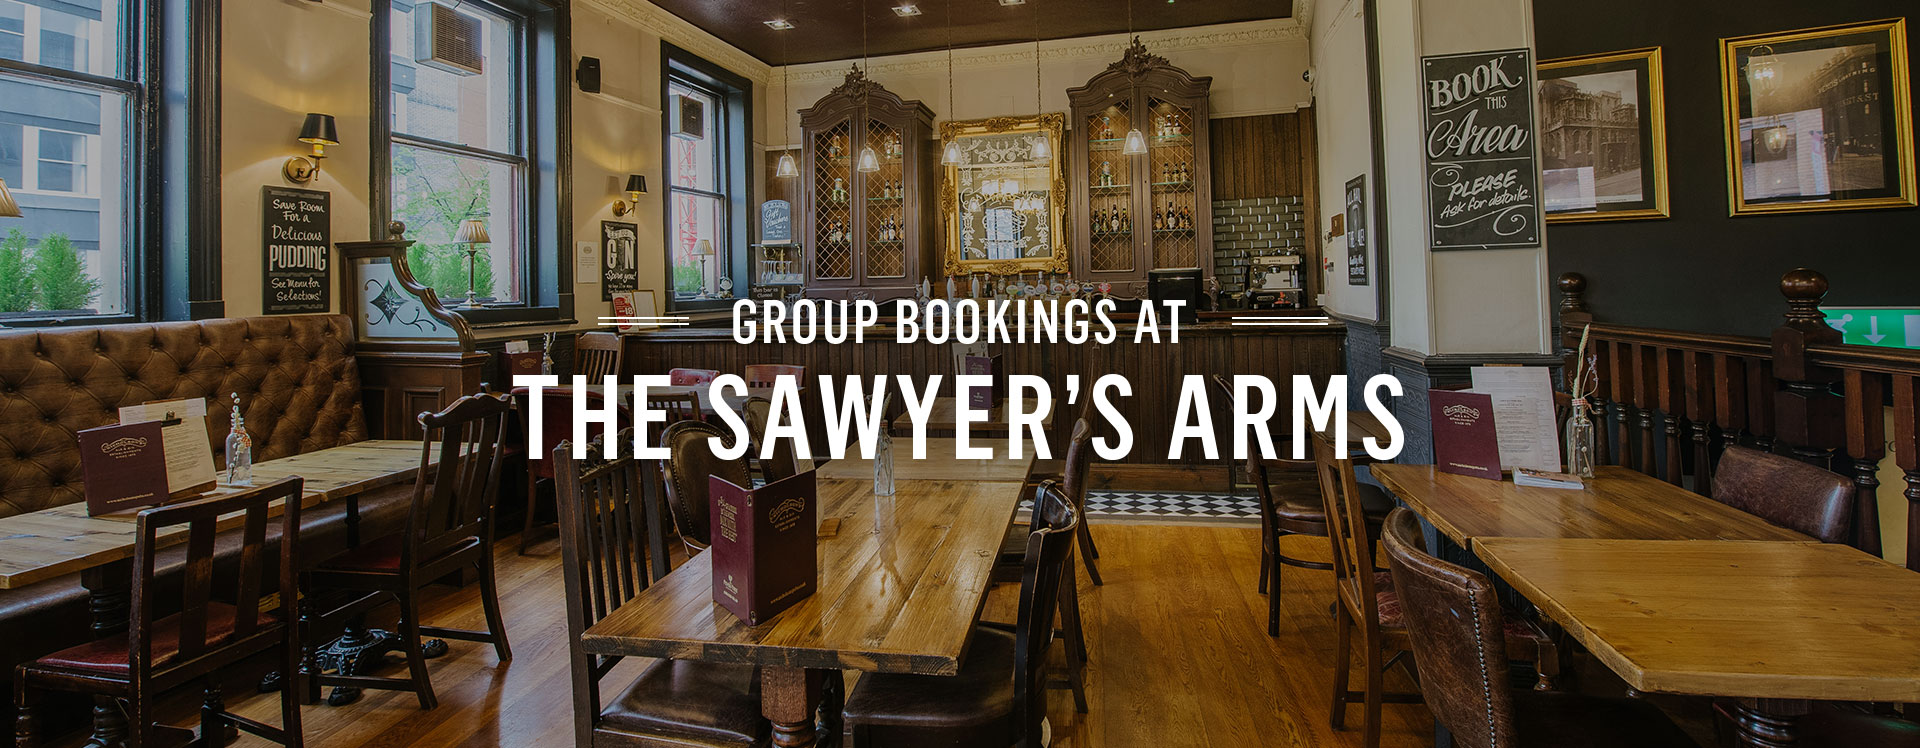 Group Bookings at The Sawyer's Arms